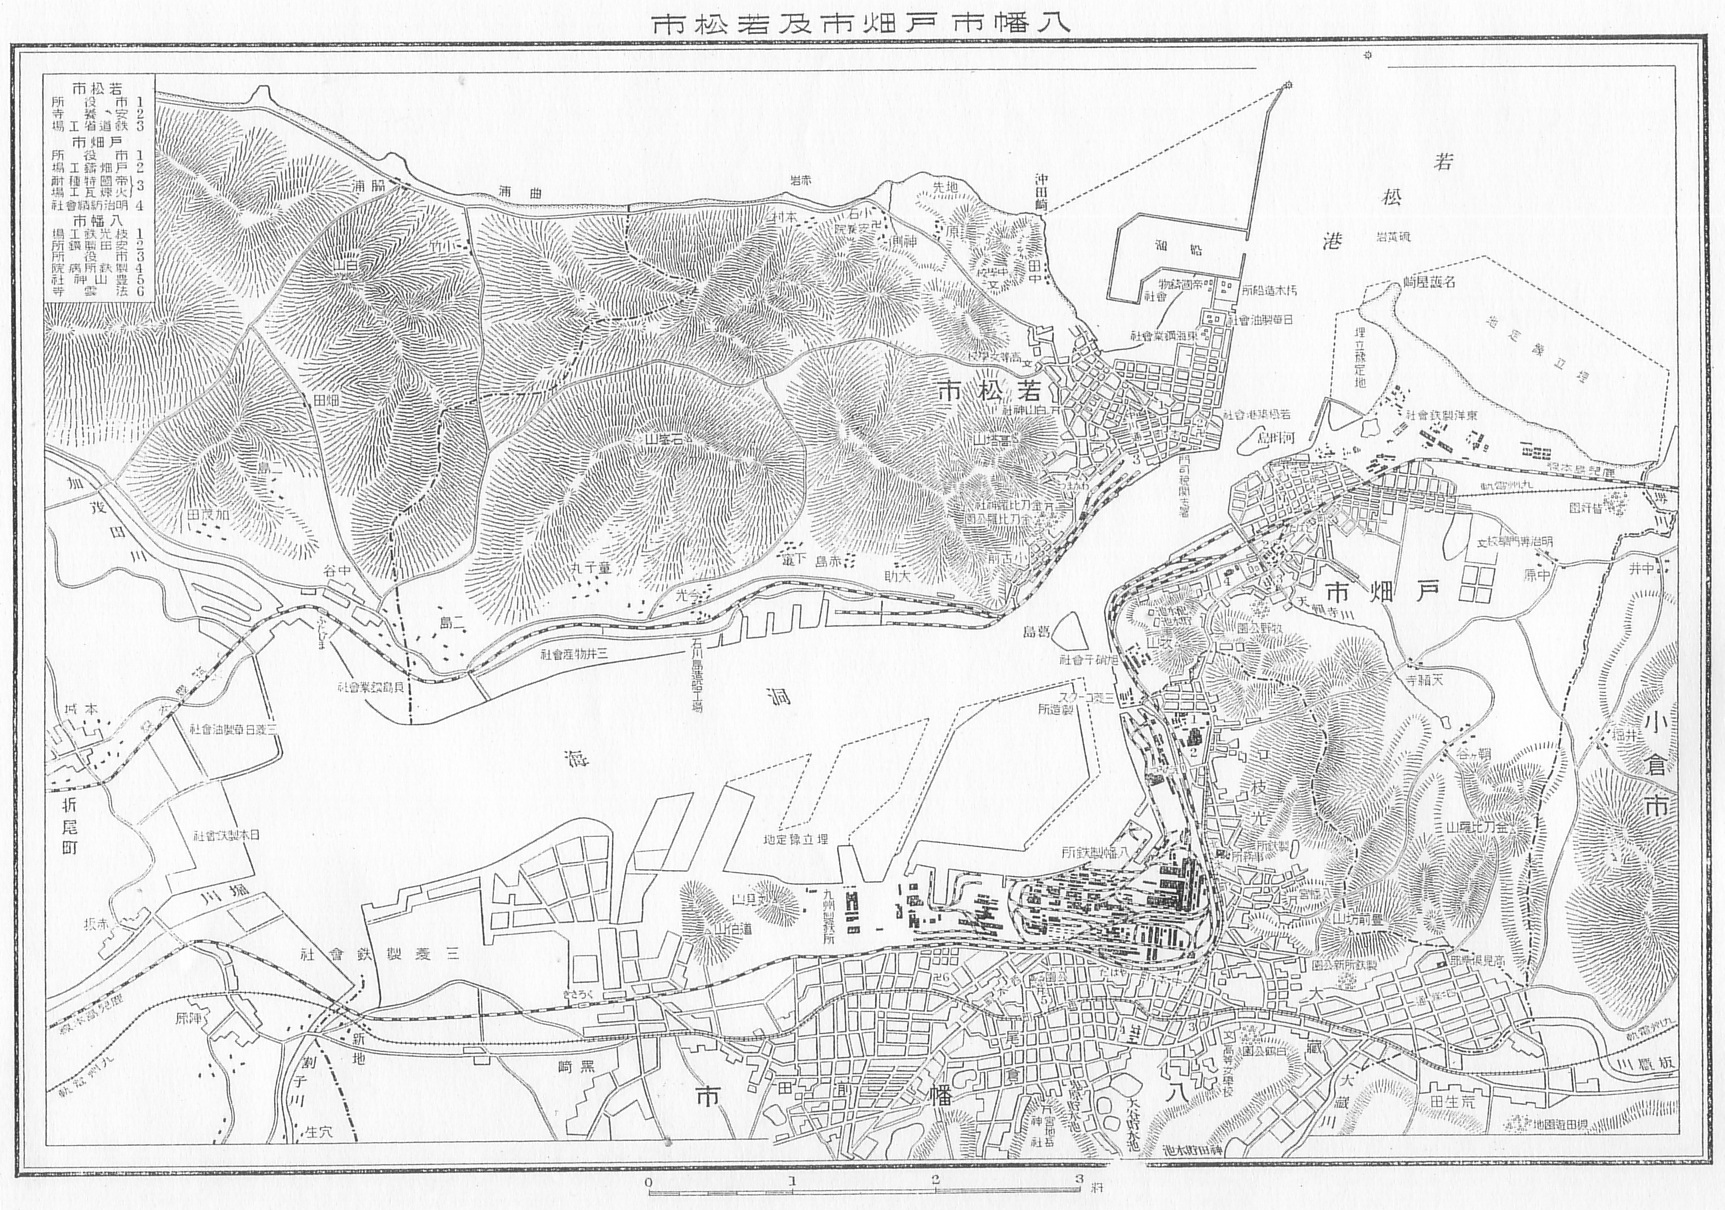 FileNorthwestern Kitakyushu map circa 1930PNG Wikimedia Commons